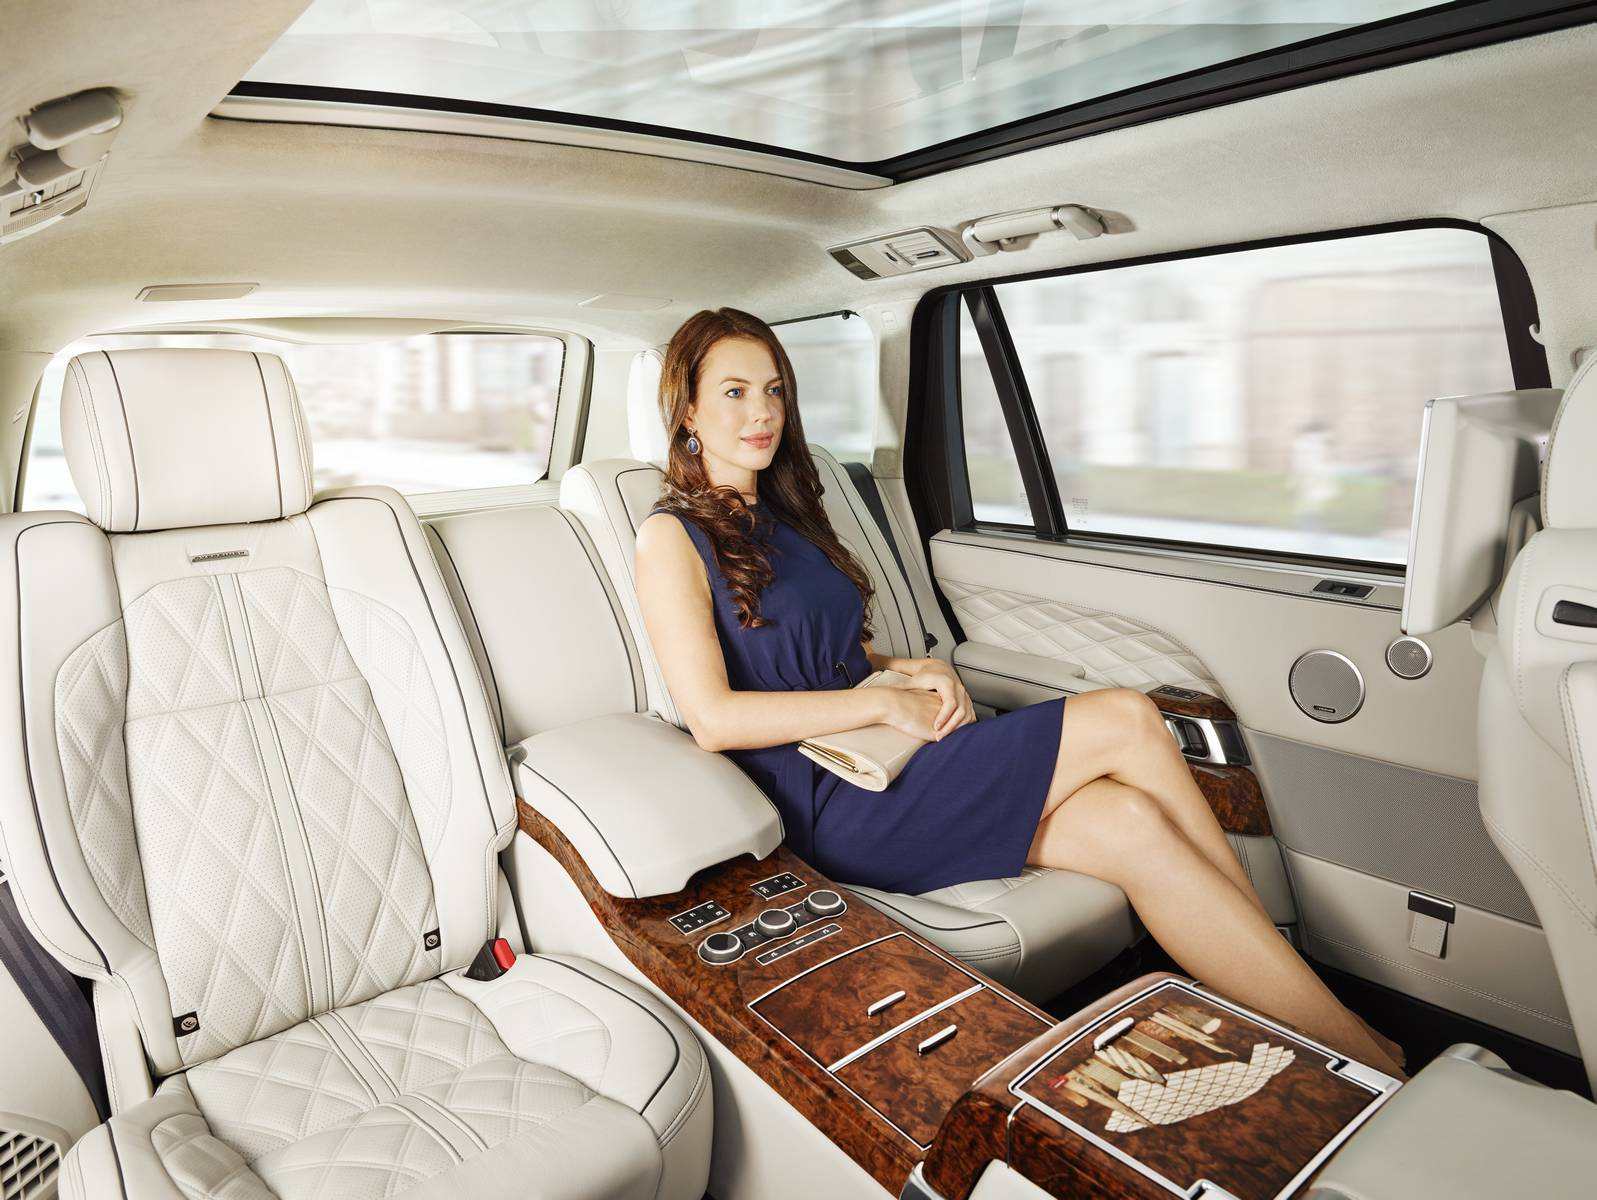 Rooms: Official: 1 Of 1 Overfinch Range Rover London Edition, £